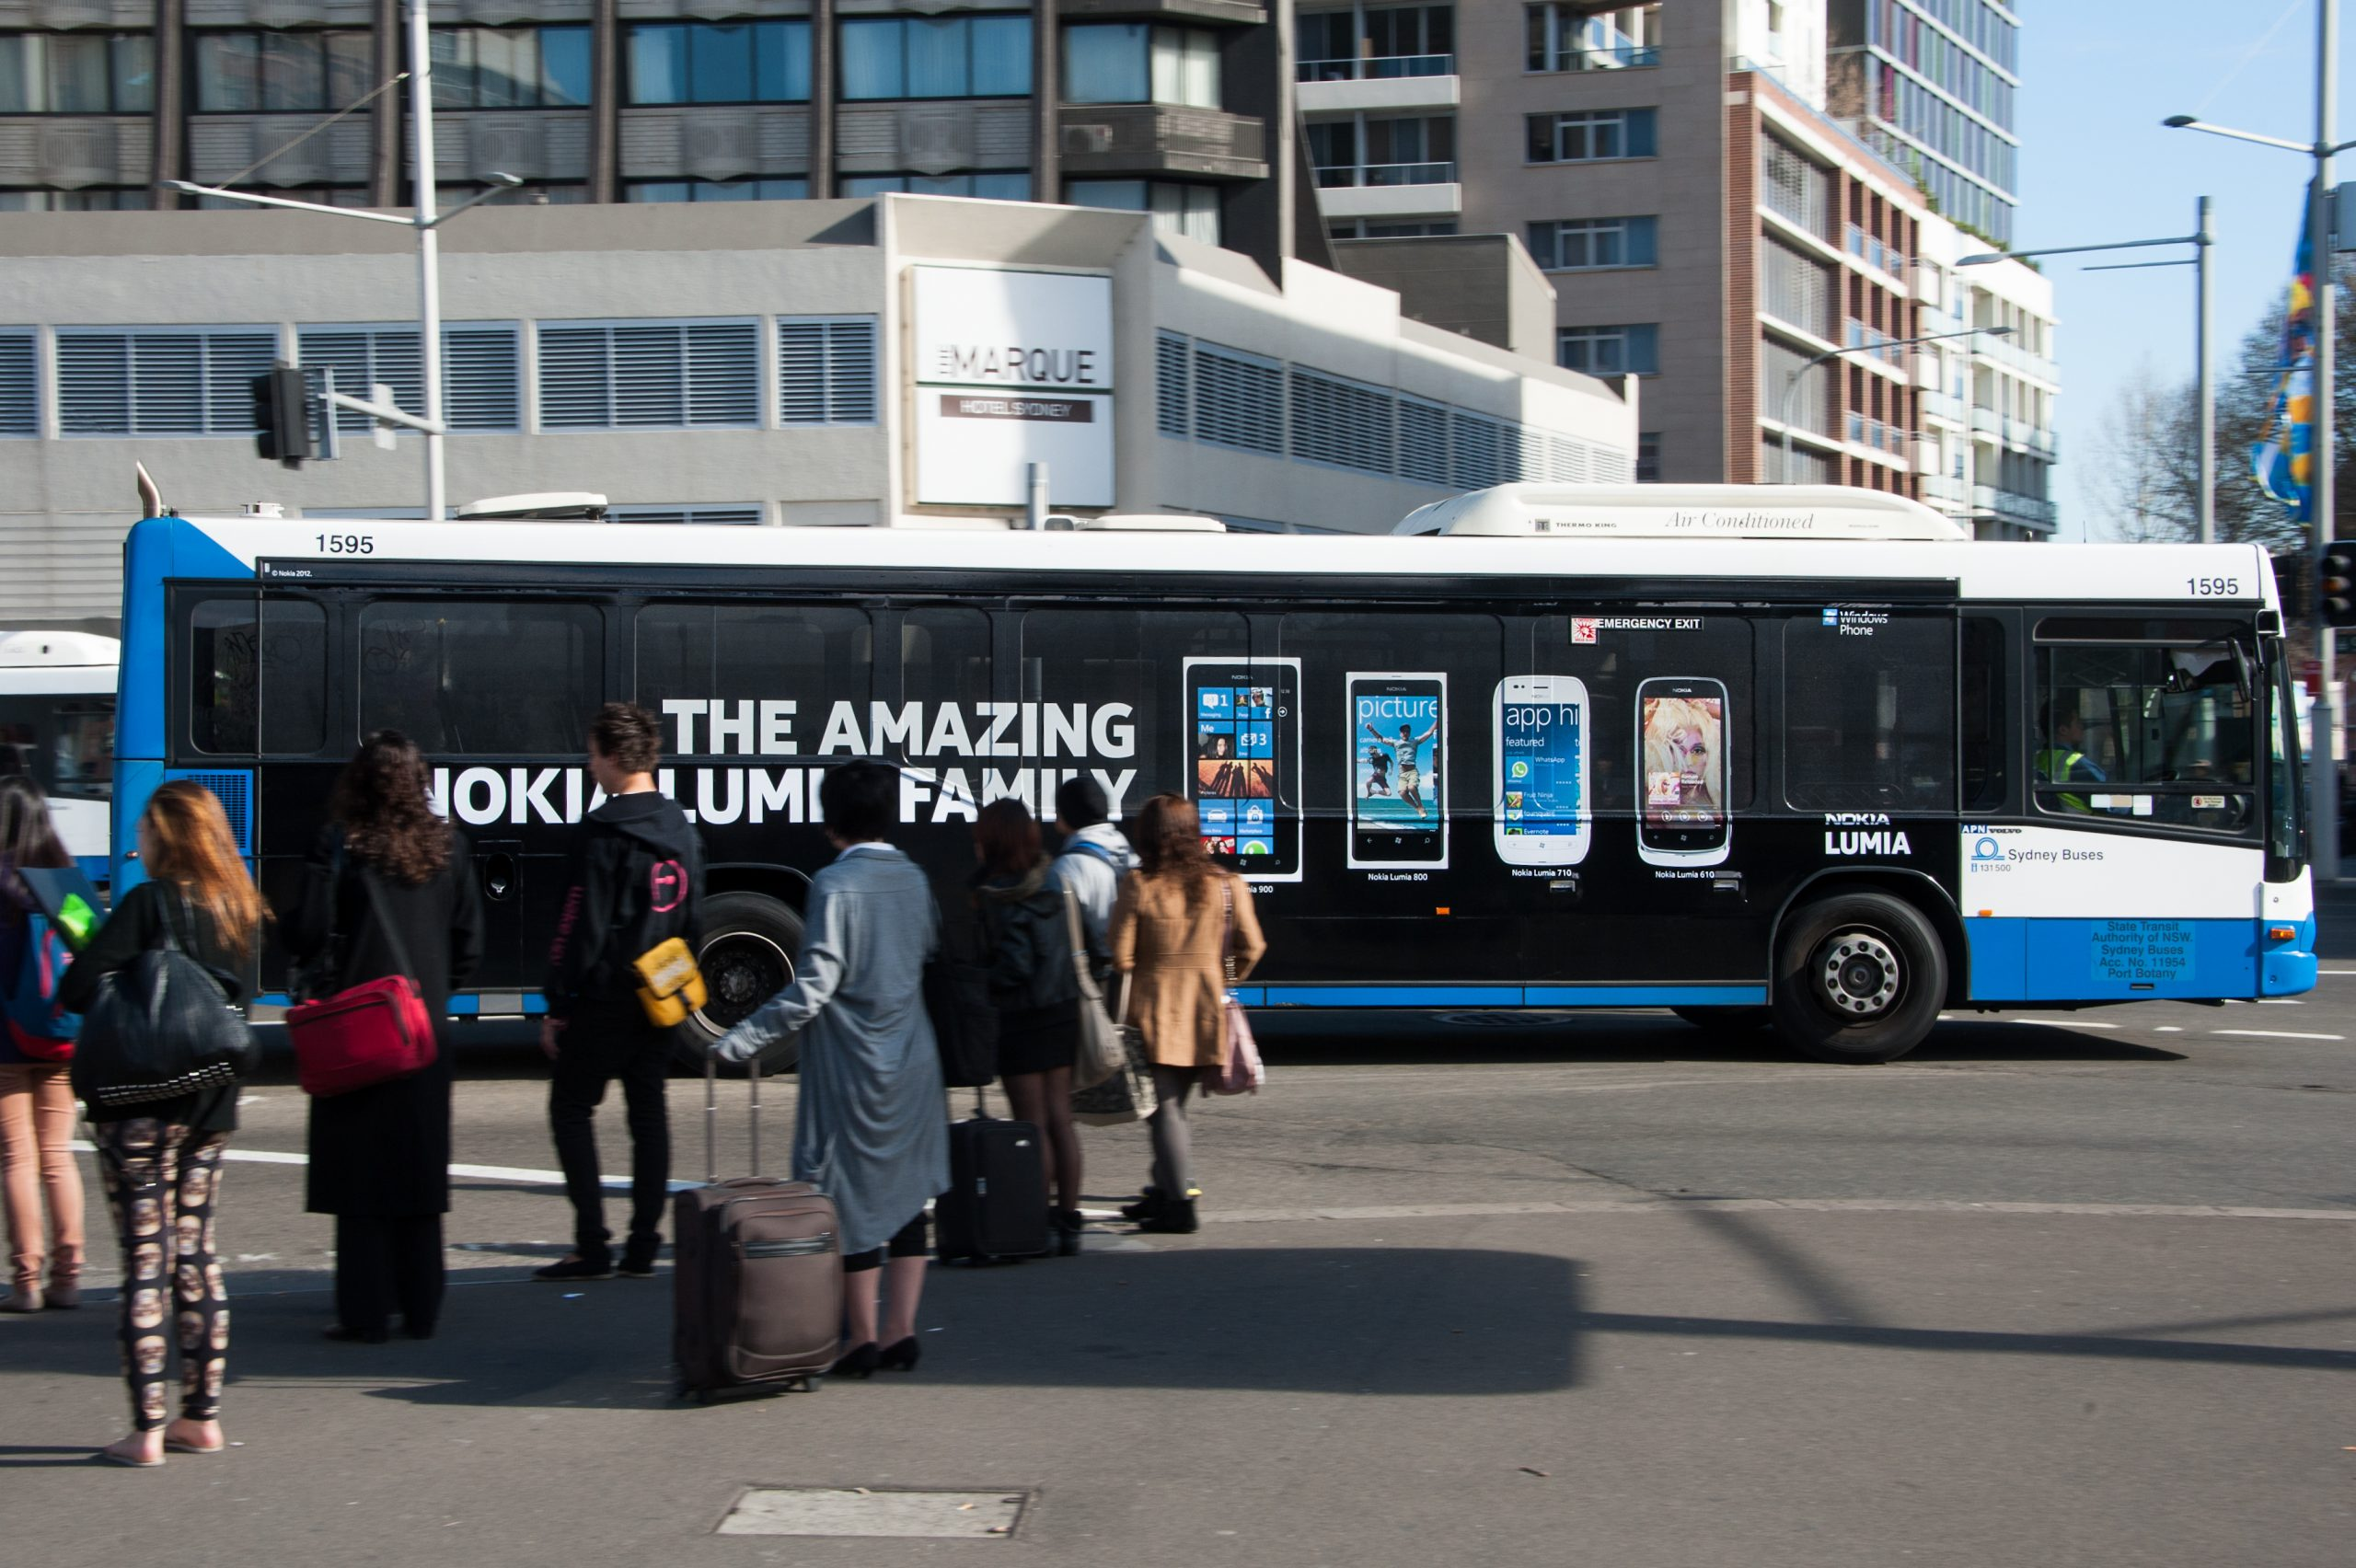 Nokia Full Side Bus Wrap With One Way Vision